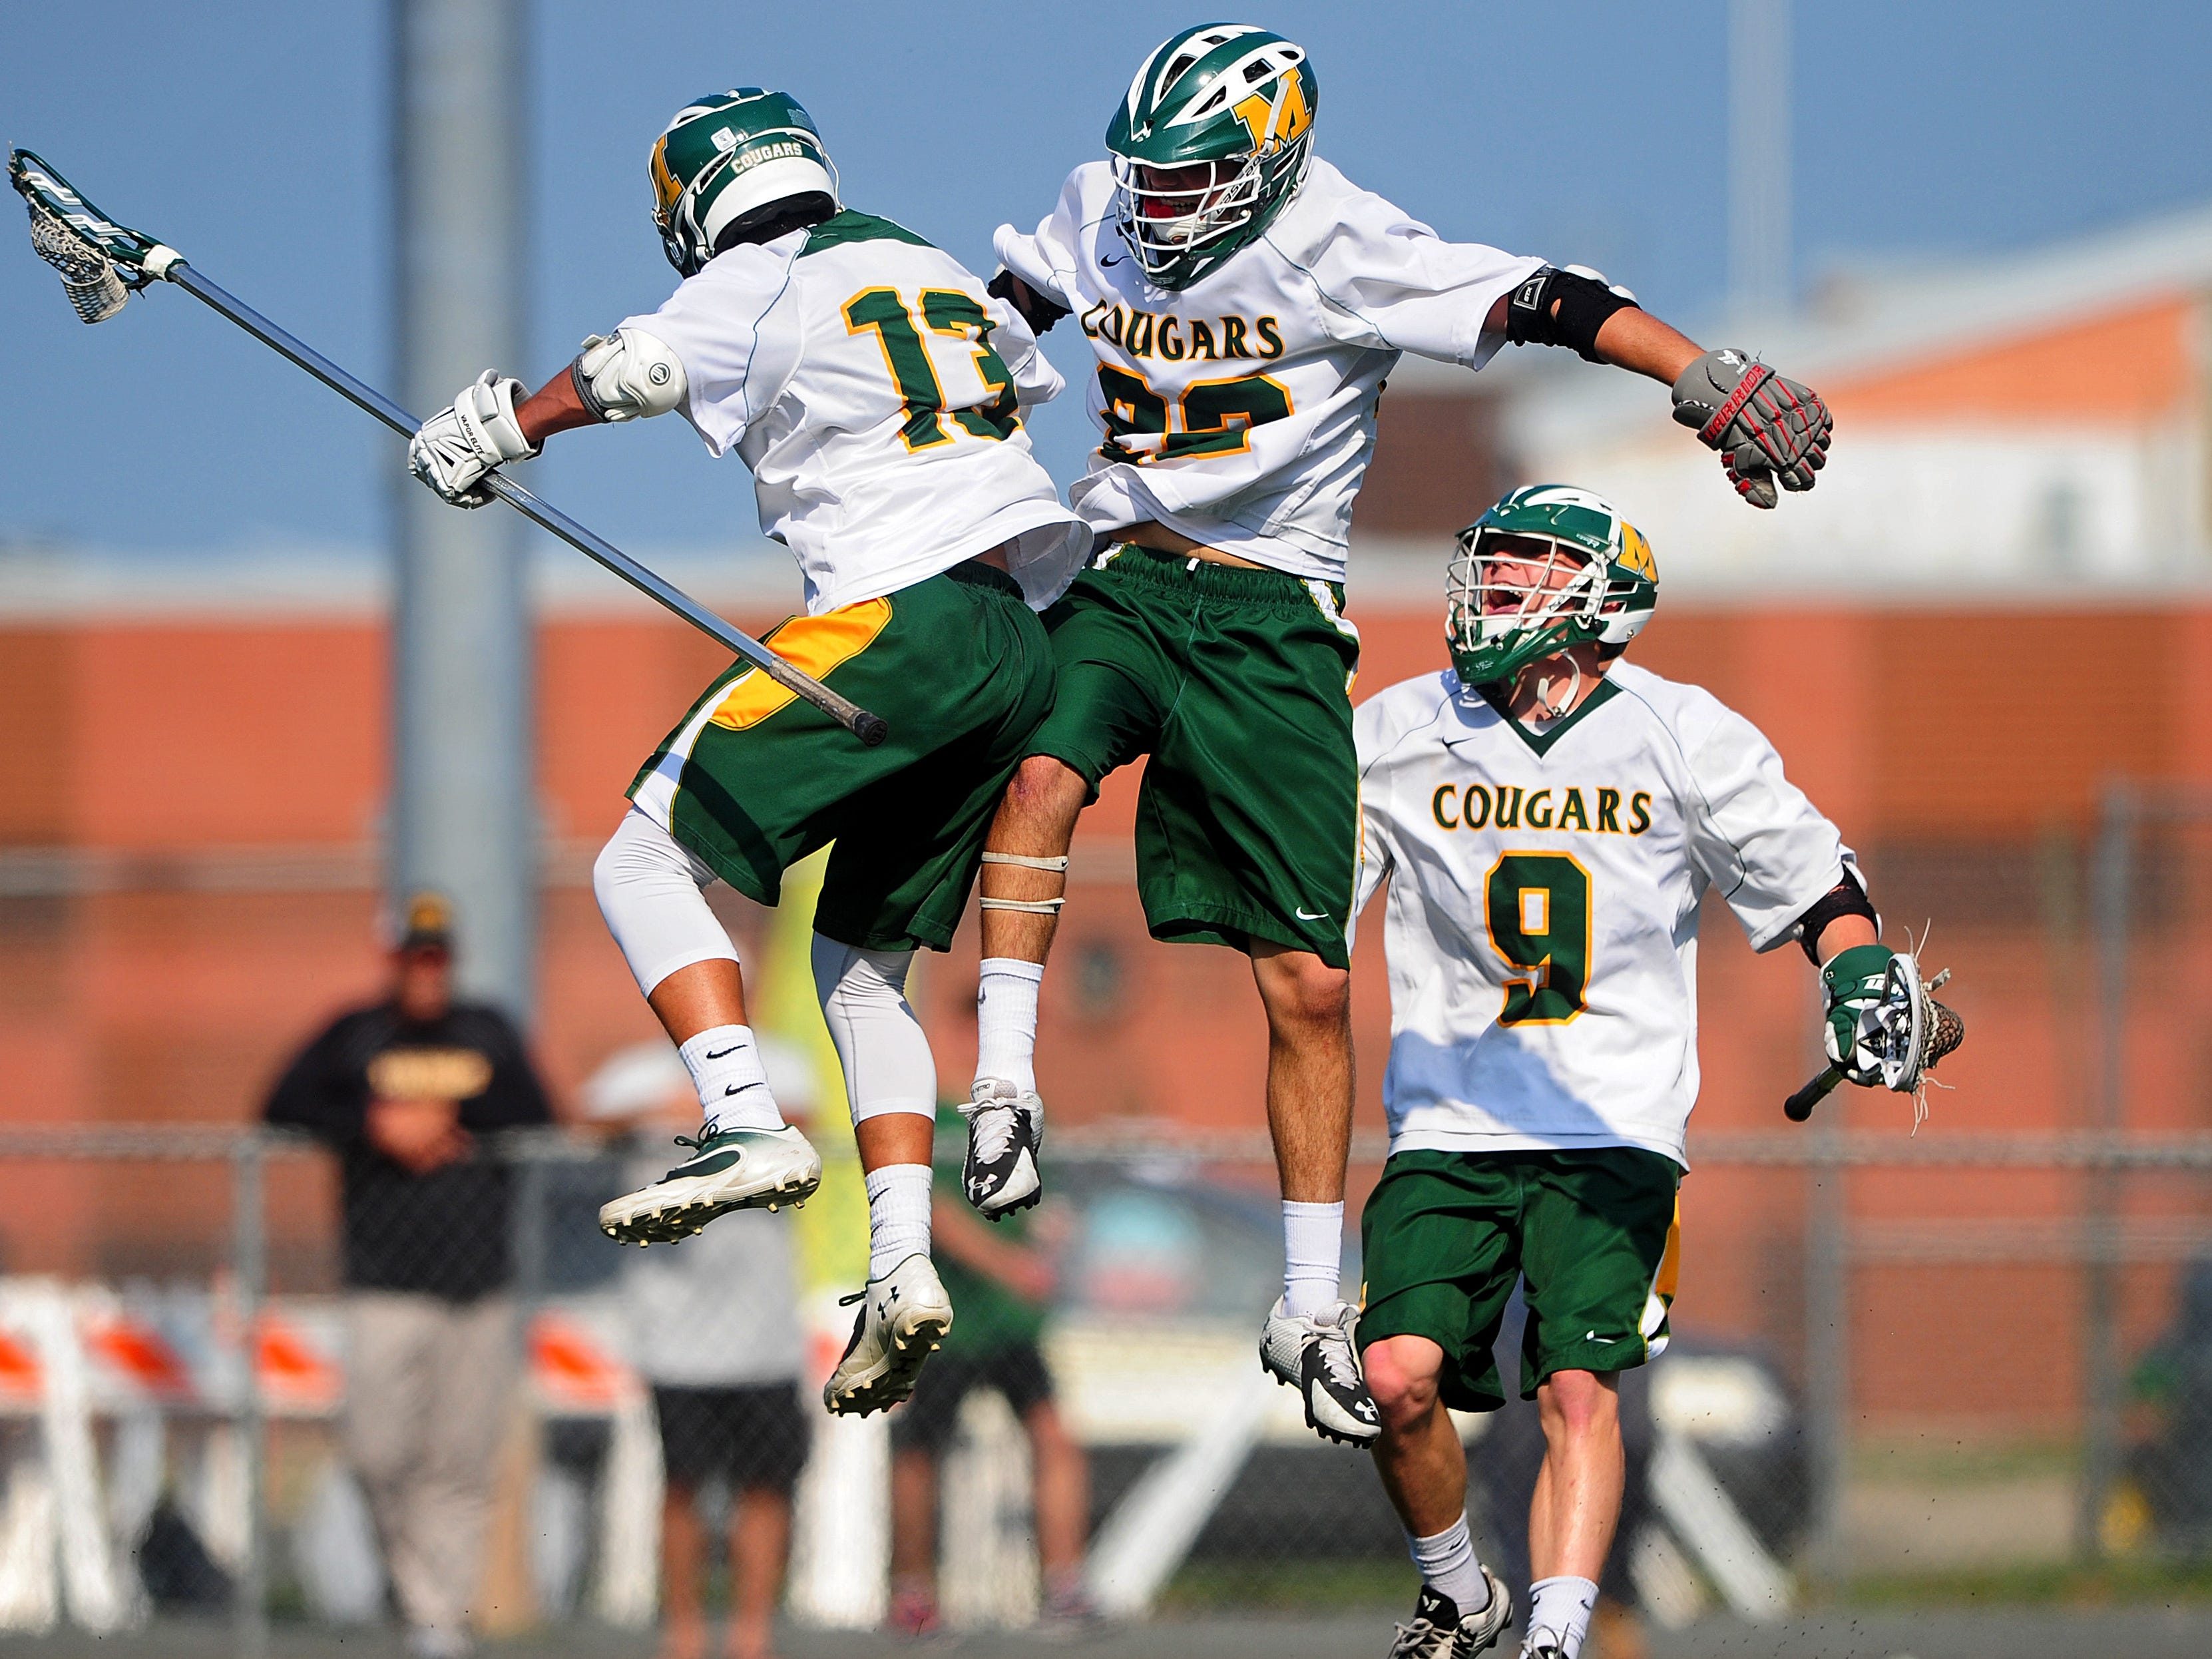 Lucas Goldoni, #13 of Montgomery, celebrates a buzzer-beating goal against Ridge in the first quarter with Matt Stagnitta, #22, and Cam Garinger, #9, during NJSIAA boys lacrosse first-round action on May 19, 2015 at Montgomery High School in Skillman, NJ. Will Schneekloth/Special to NJ State Media BRI 0520 BLAX Ridge at Montgomery